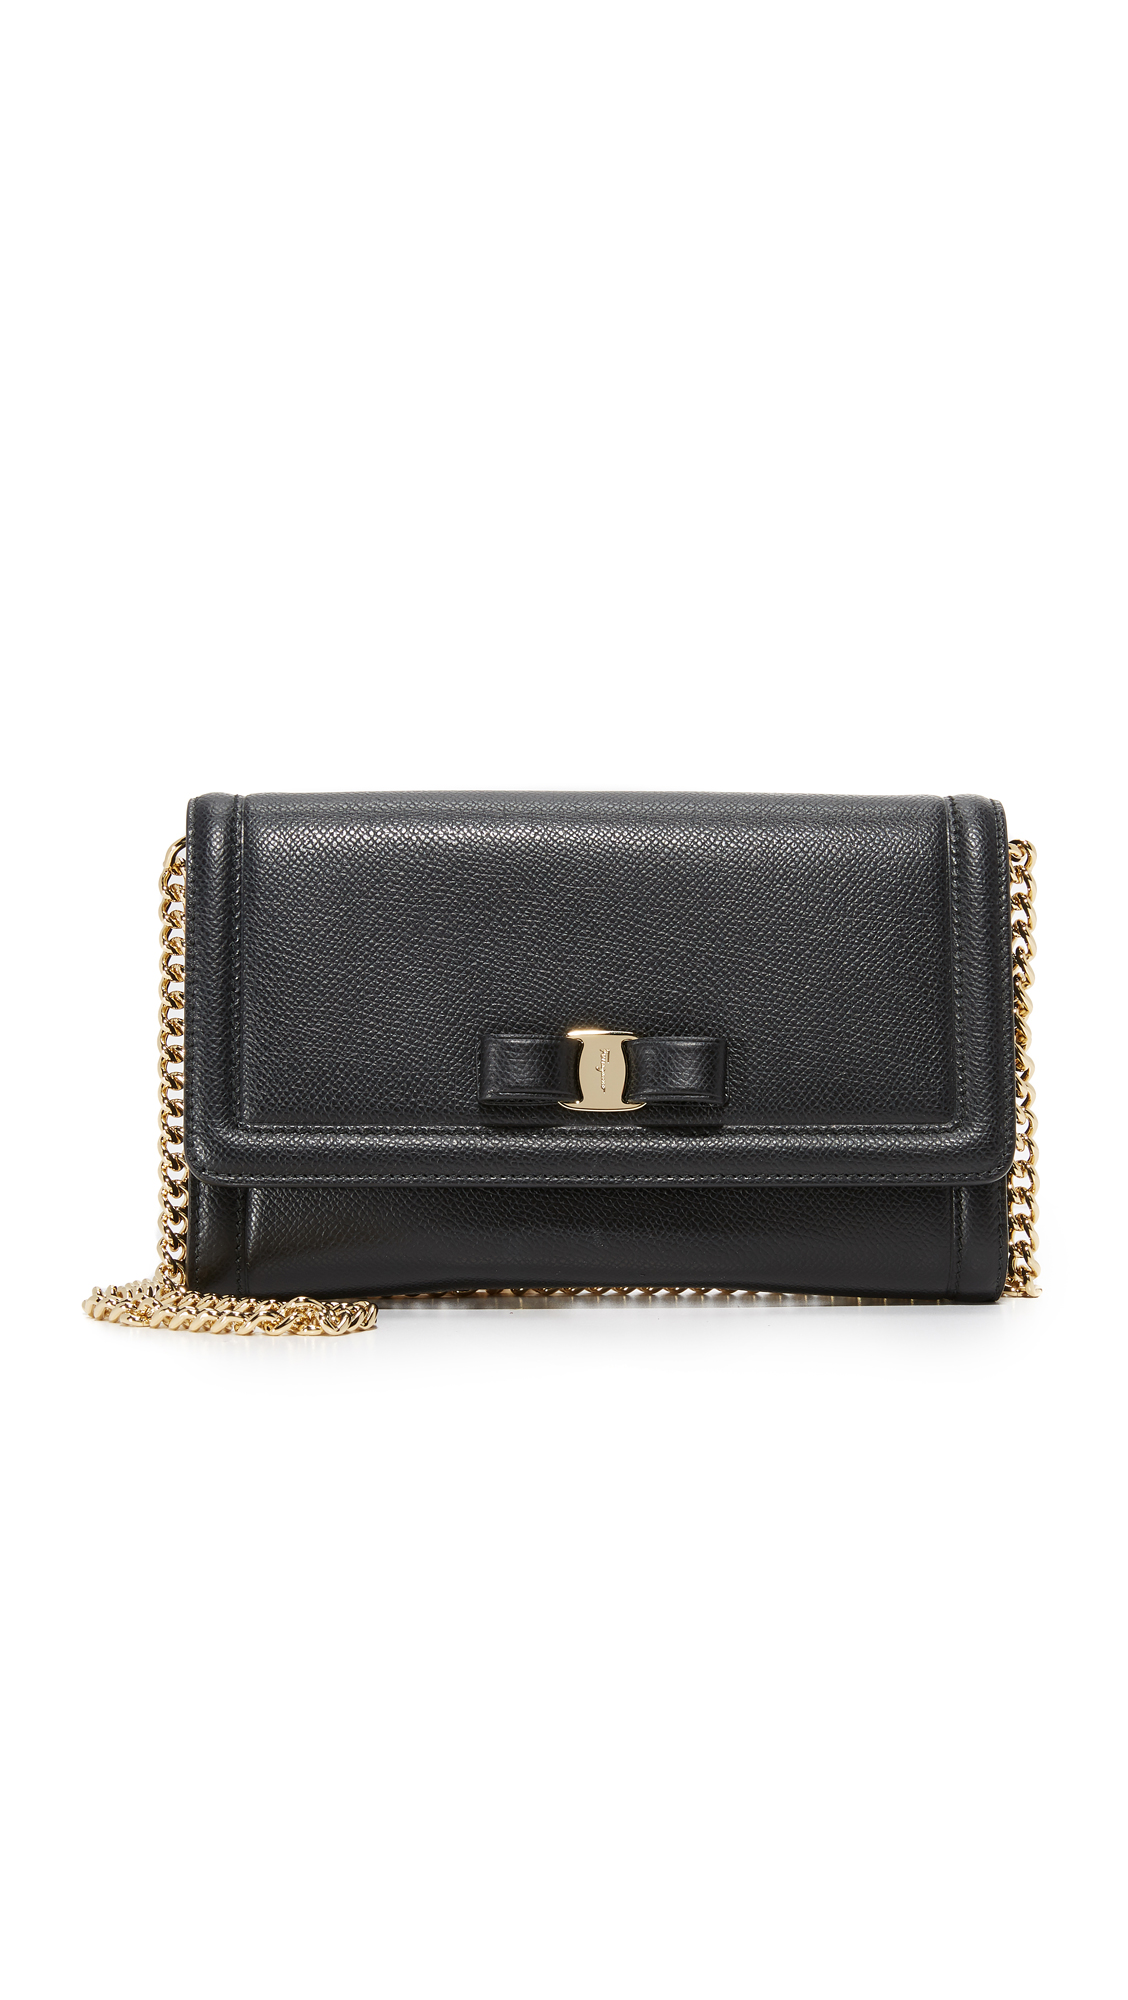 Salvatore Ferragamo Vara Mini Bag - Nero